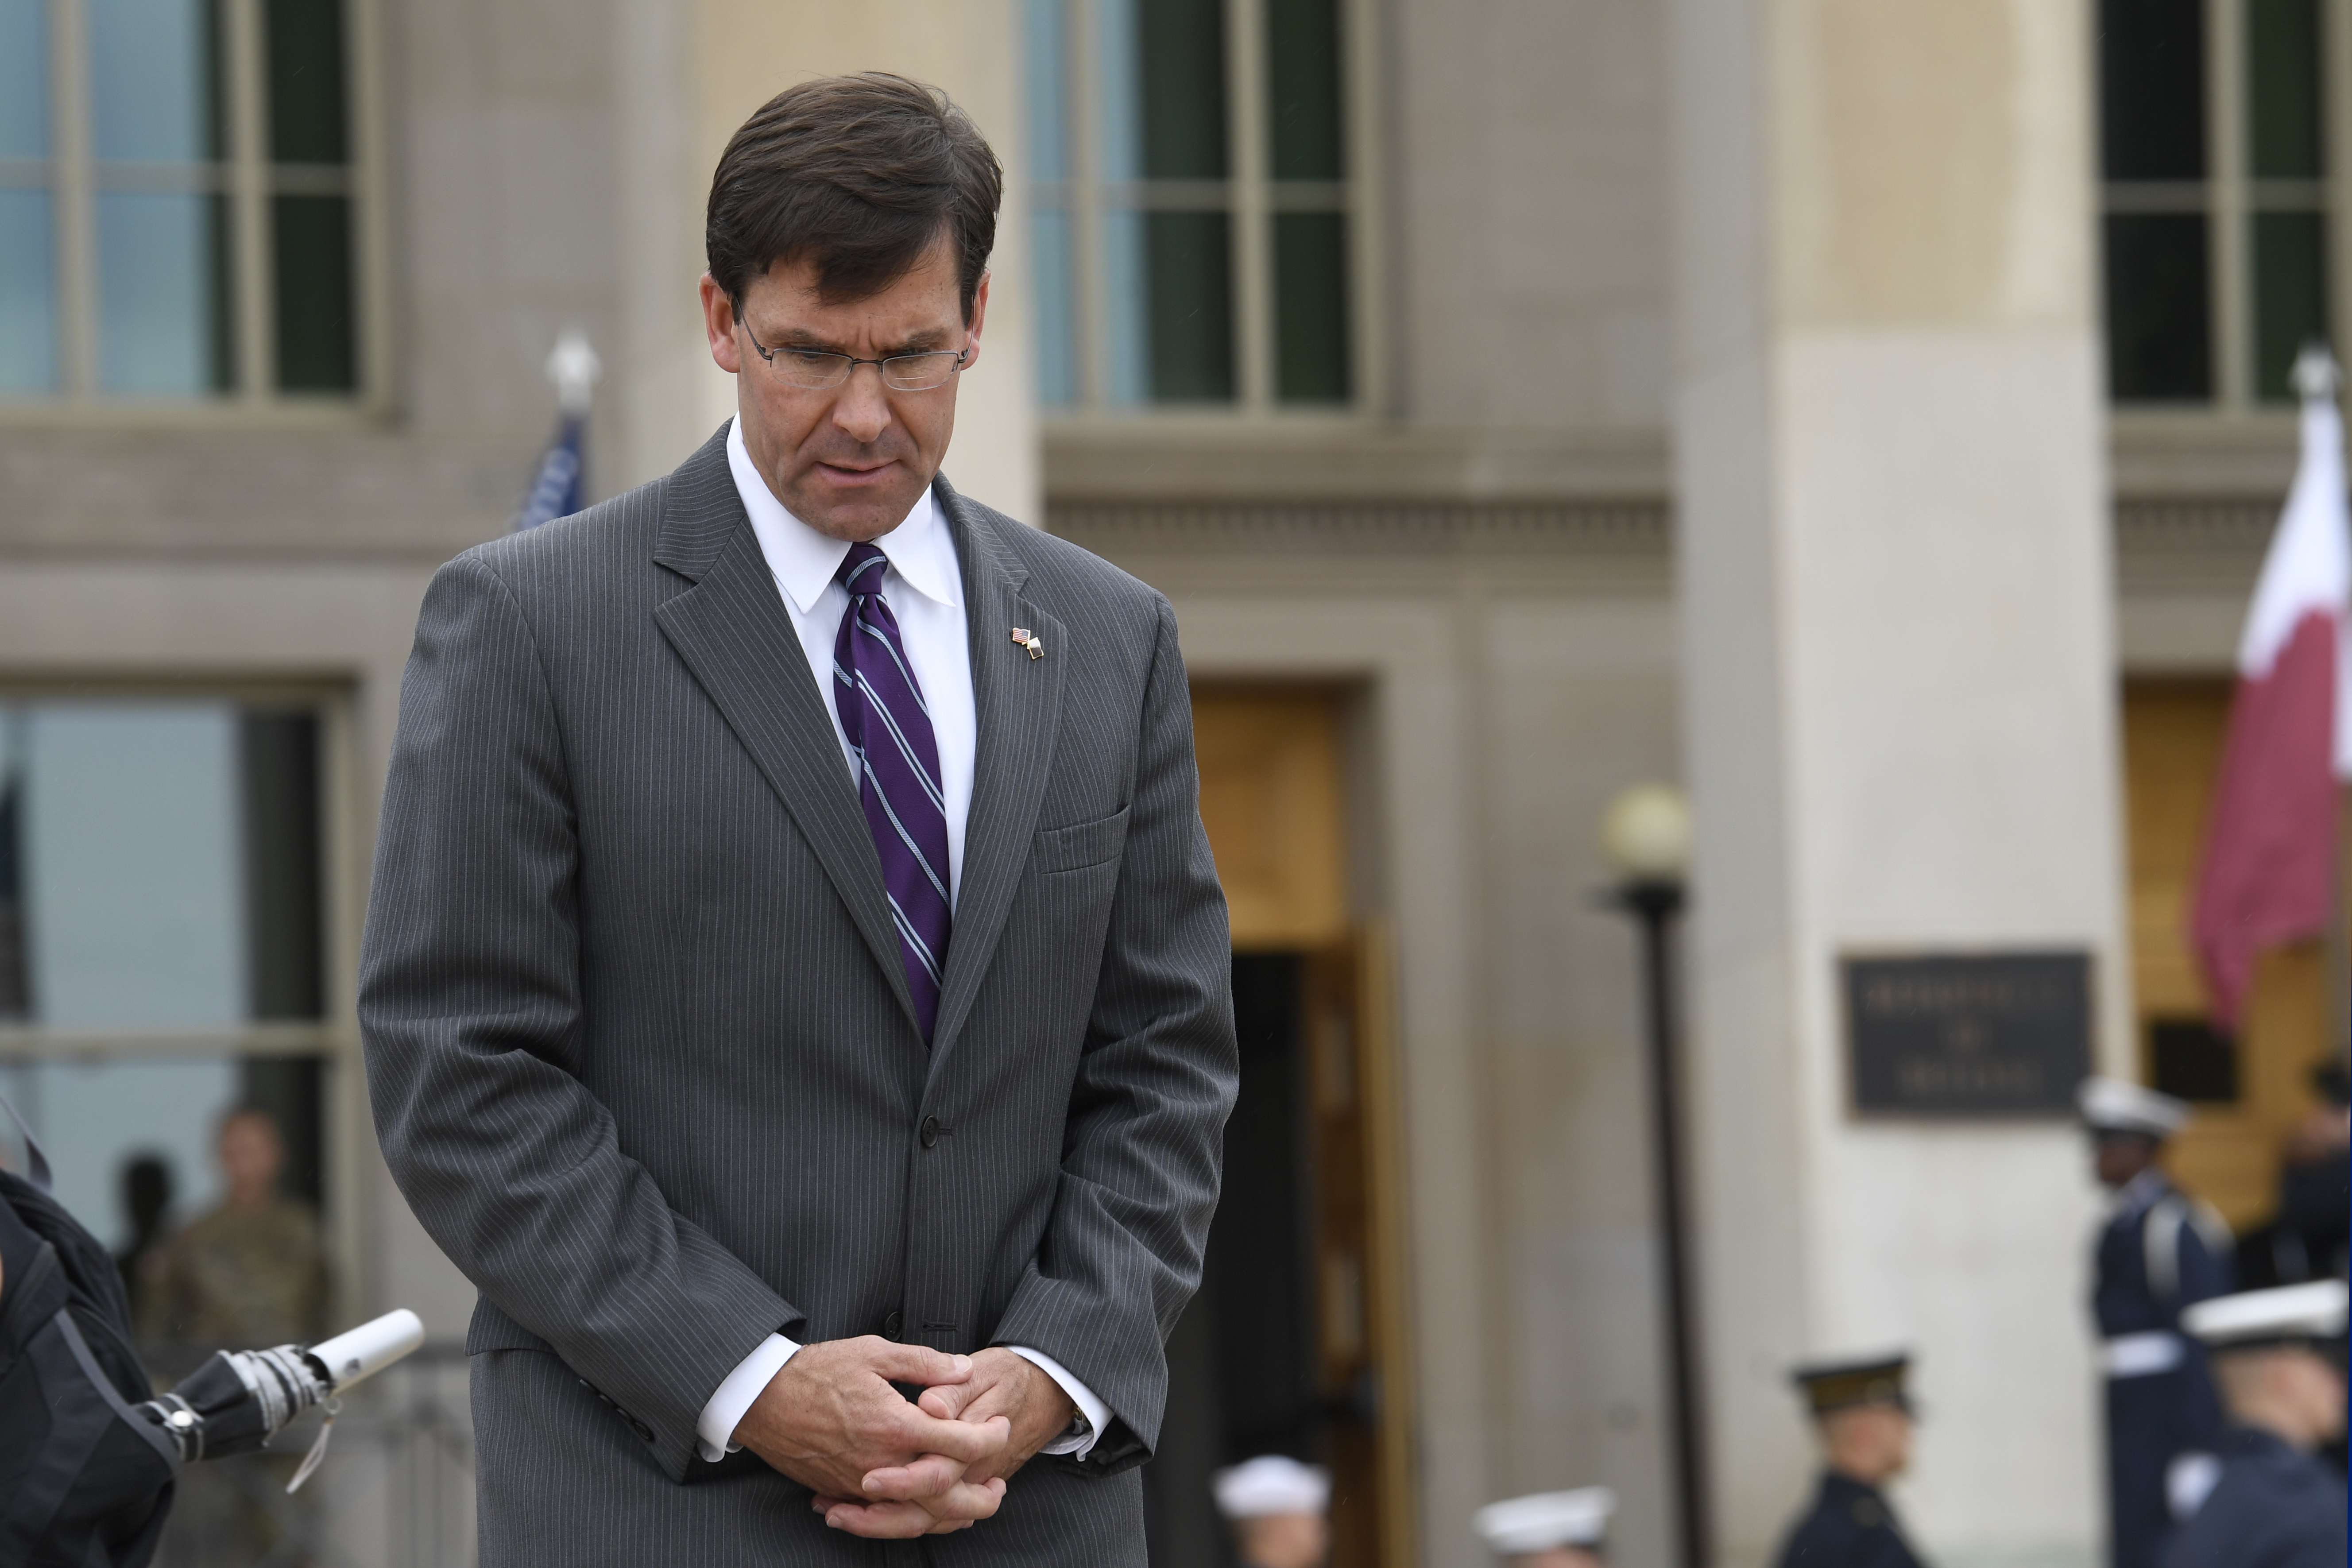 Acting Defense Secretary Mark Esper is set to receive a formal nomination for the full job. (Susan Walsh/AP)